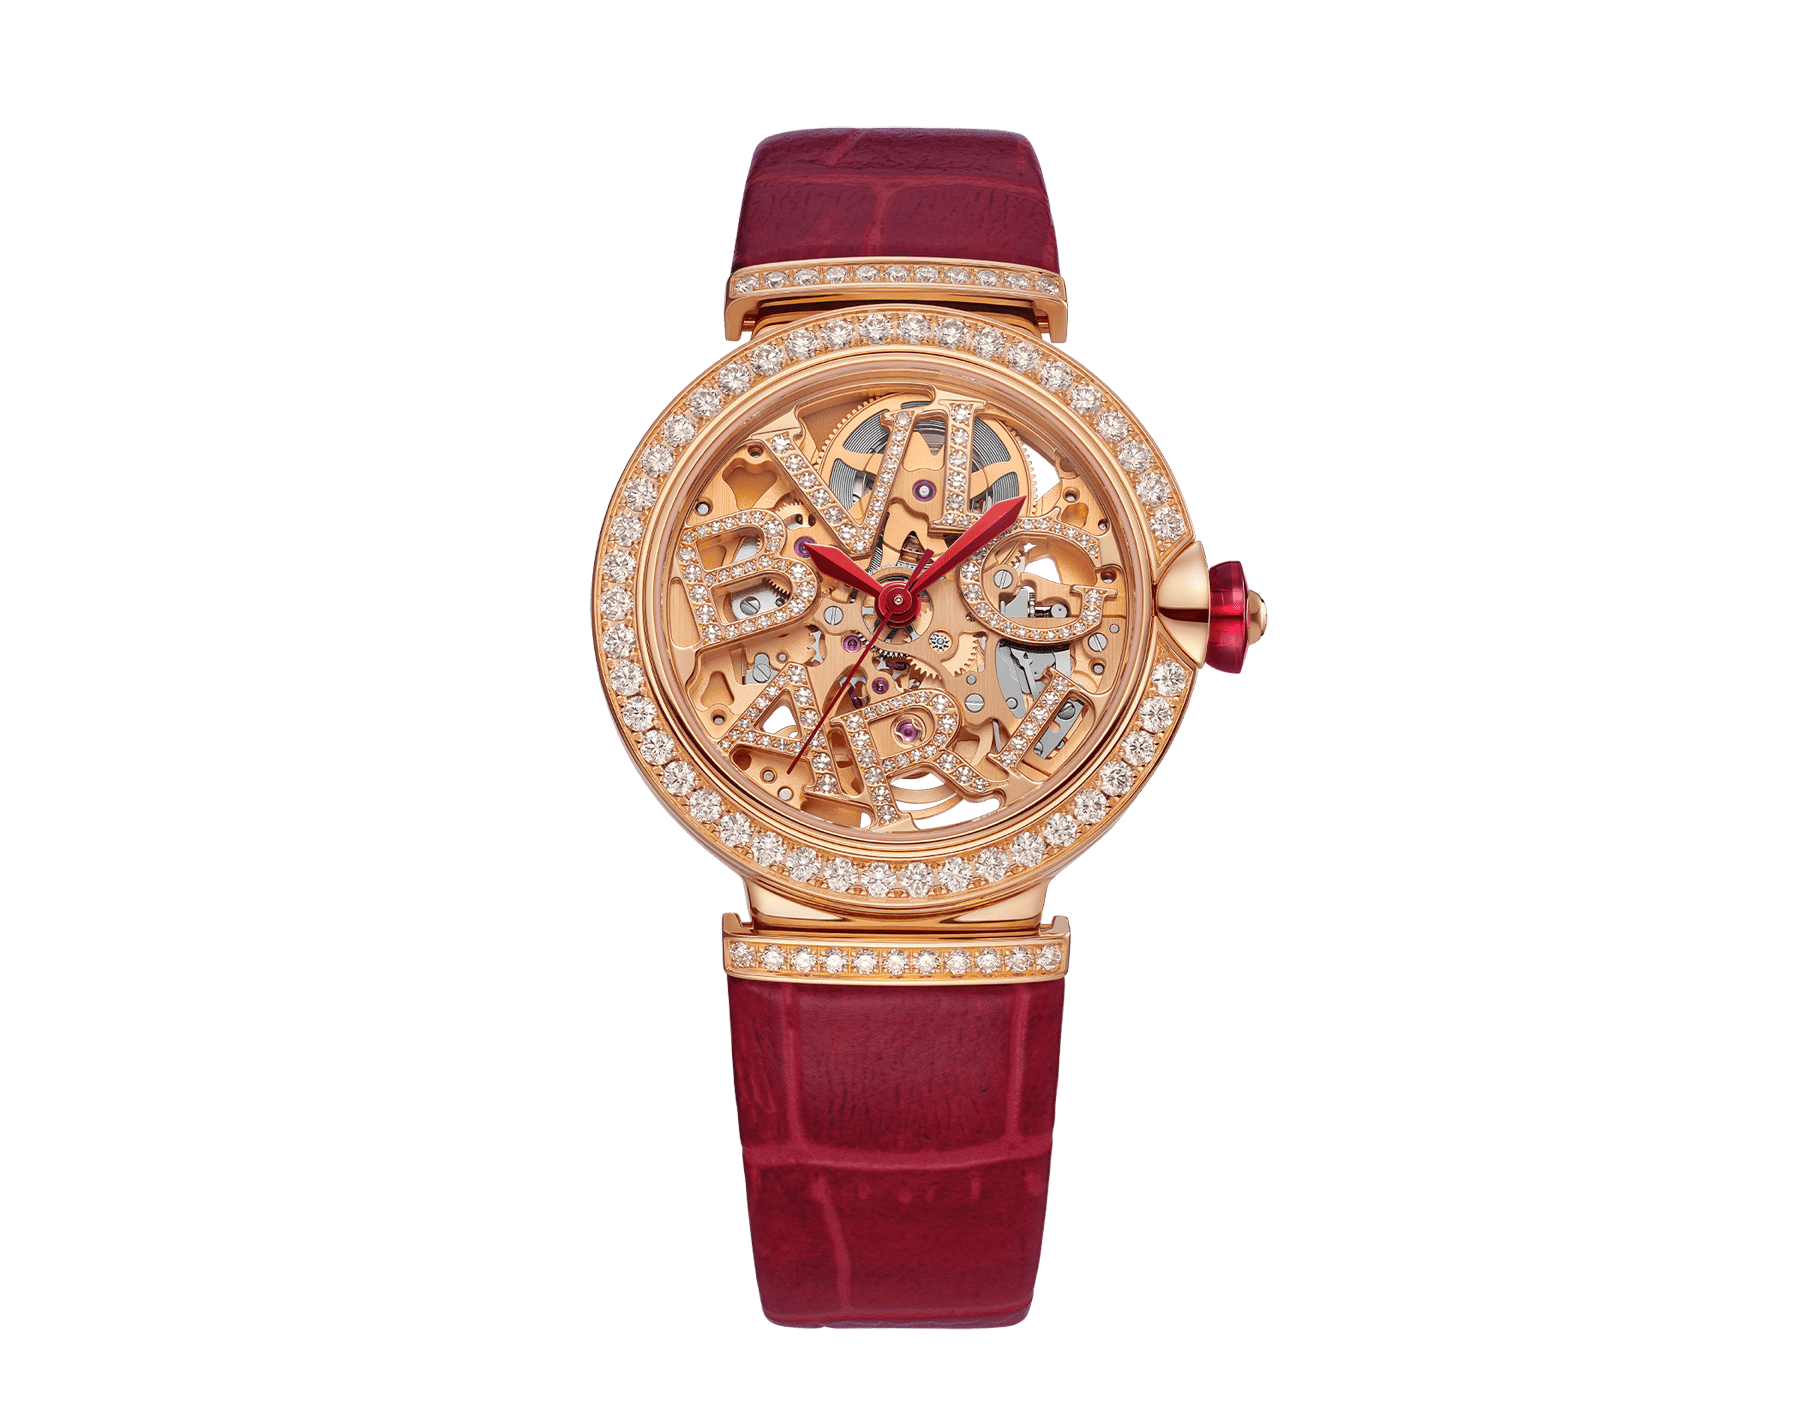 LVCEA Skeleton watch with mechanical manufacture movement, automatic winding, 18 kt rose gold case set with diamonds, openwork BVLGARI logo dial set with diamonds and red alligator bracelet 102833 image 1